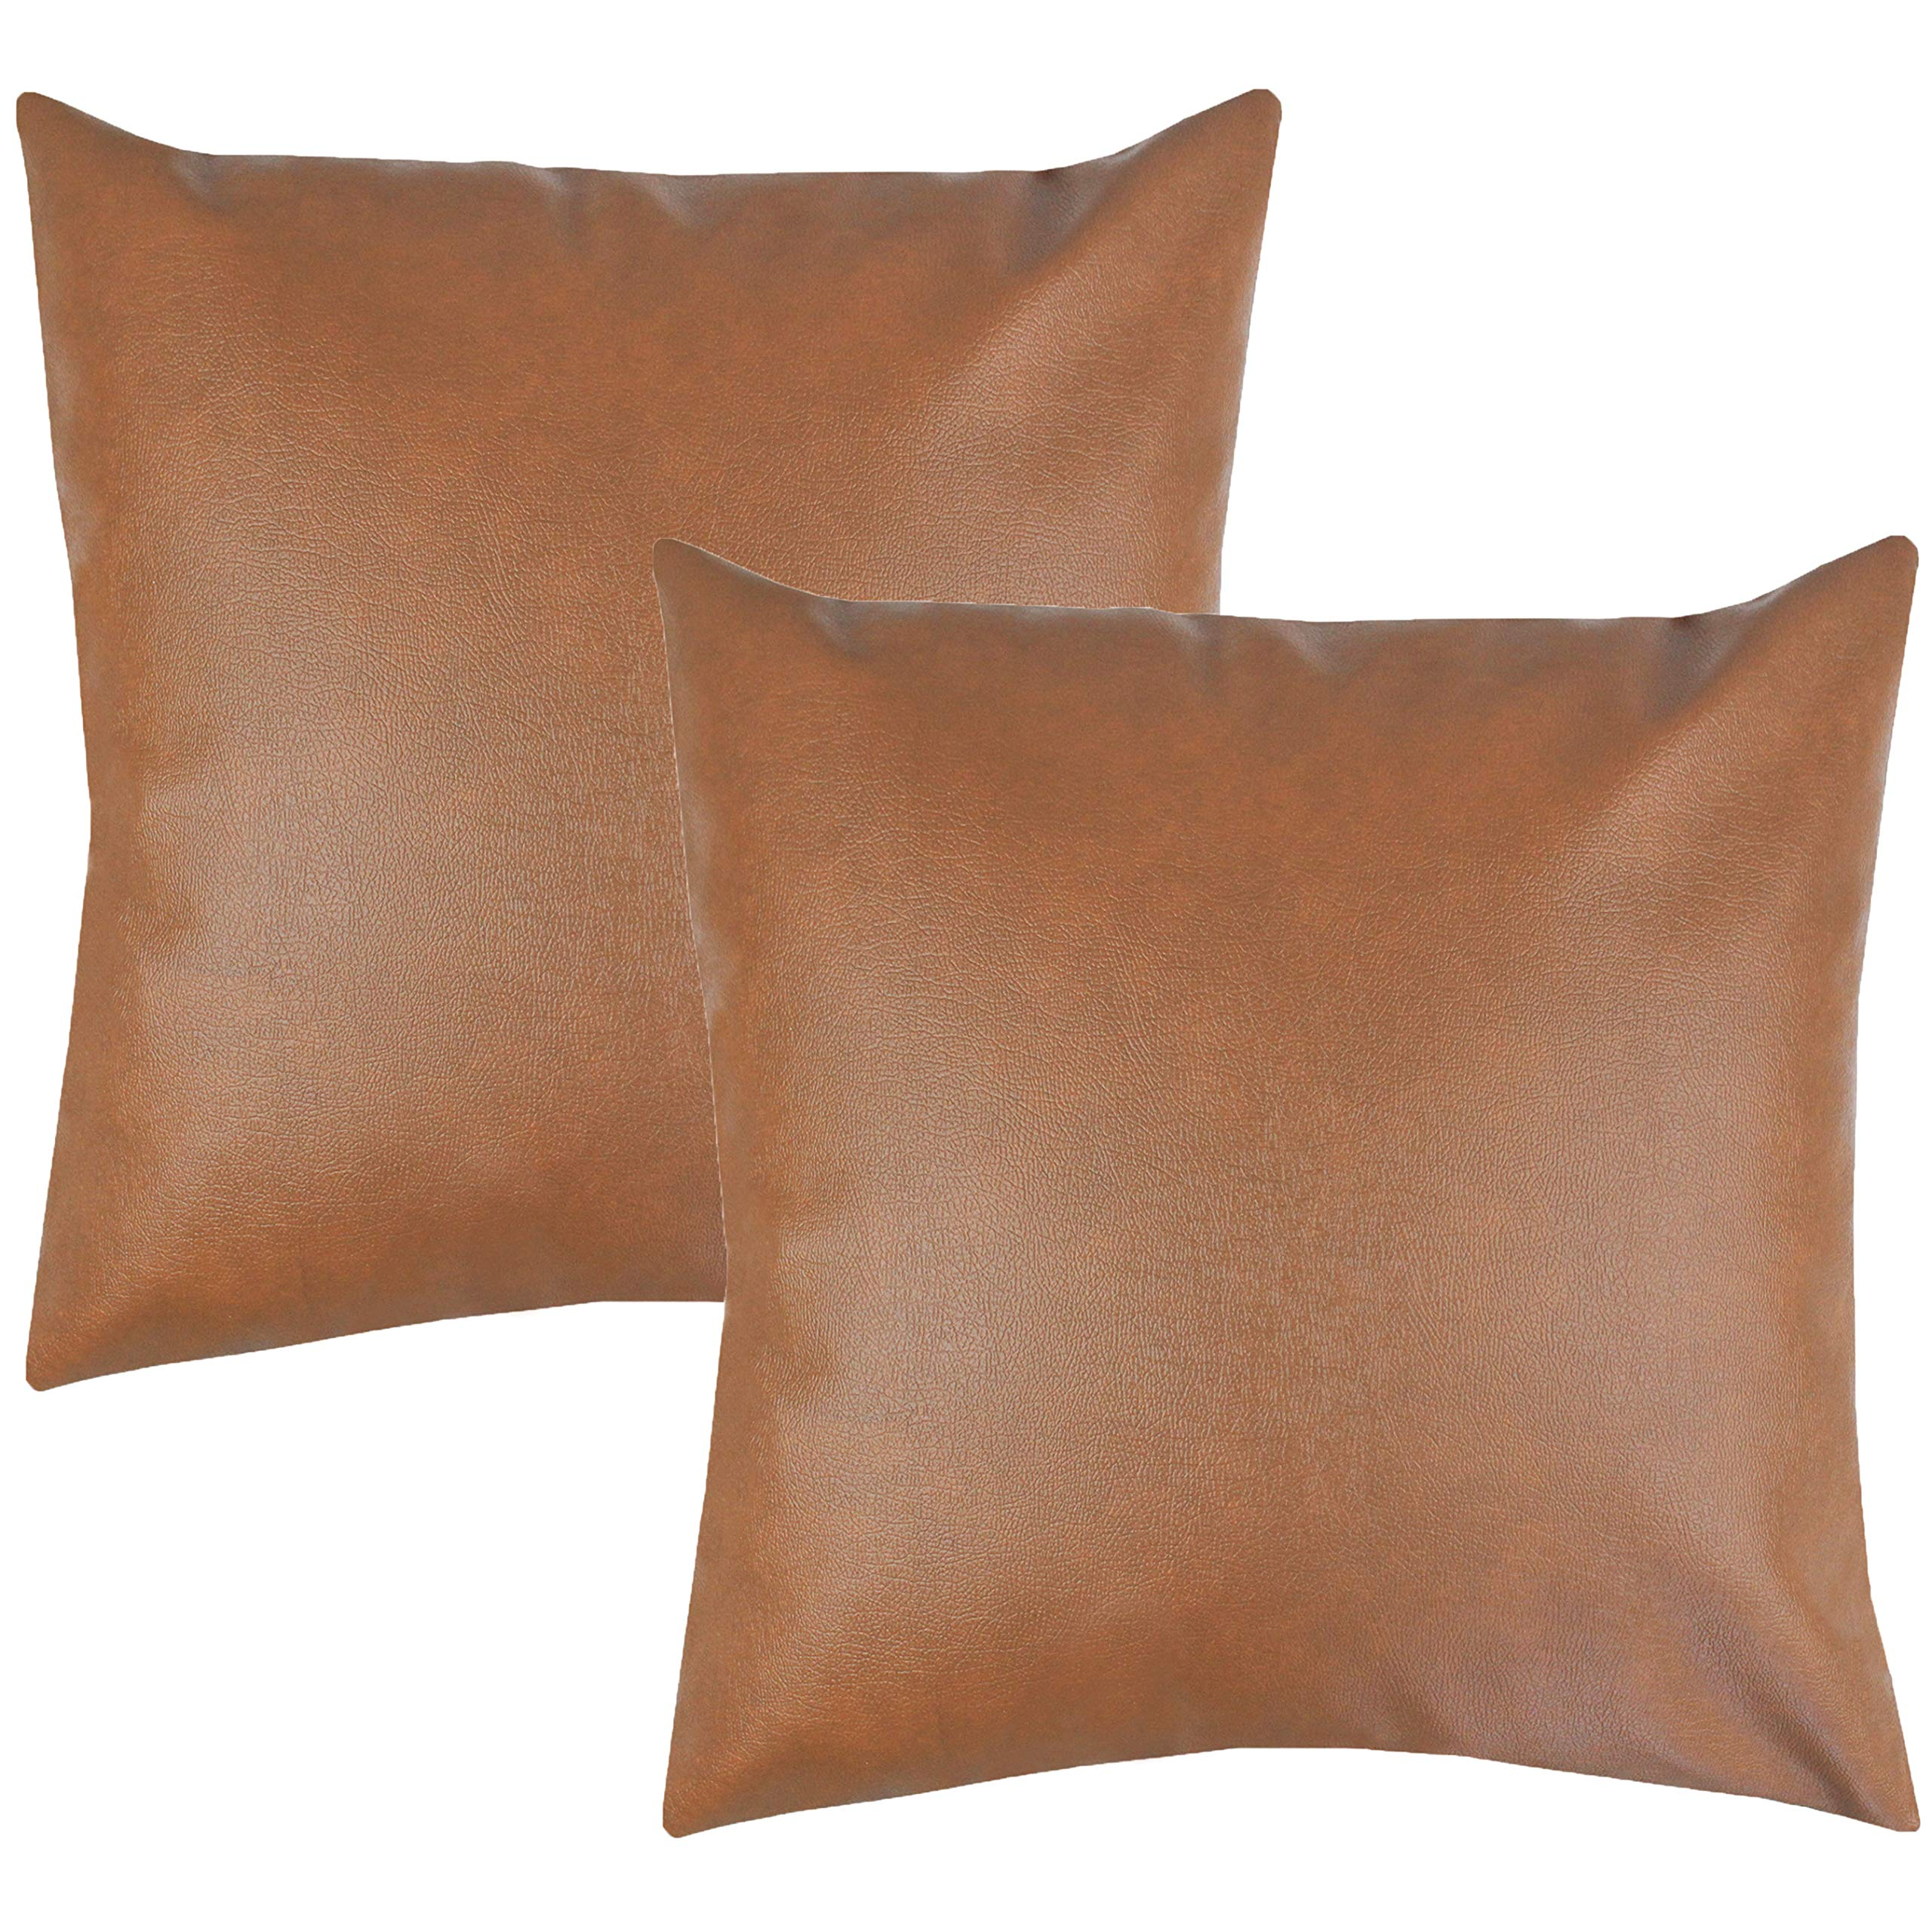 Woven Nook Decorative Throw Pillow COVERS ONLY For Couch, Sofa, or Bed Set Of 2 18 x 18 inch Modern Quality Design 100% Faux Leather MILO by